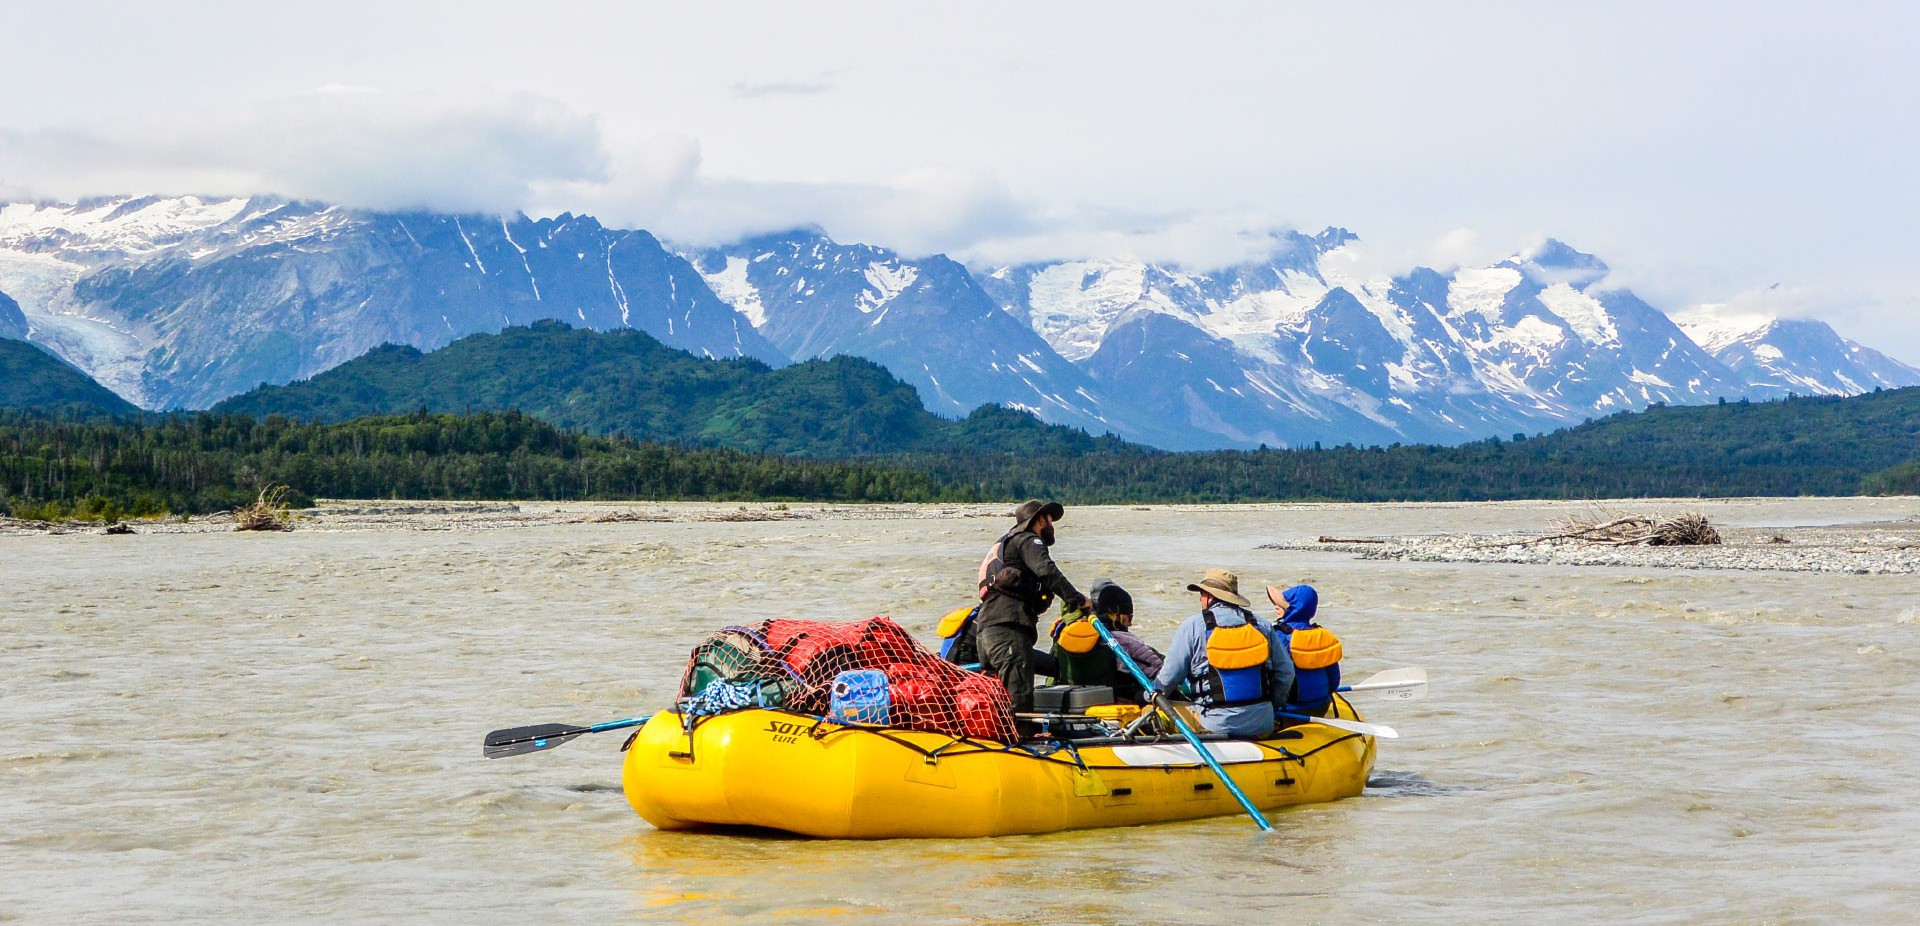 Rafting-Canadian Rafting Adventures